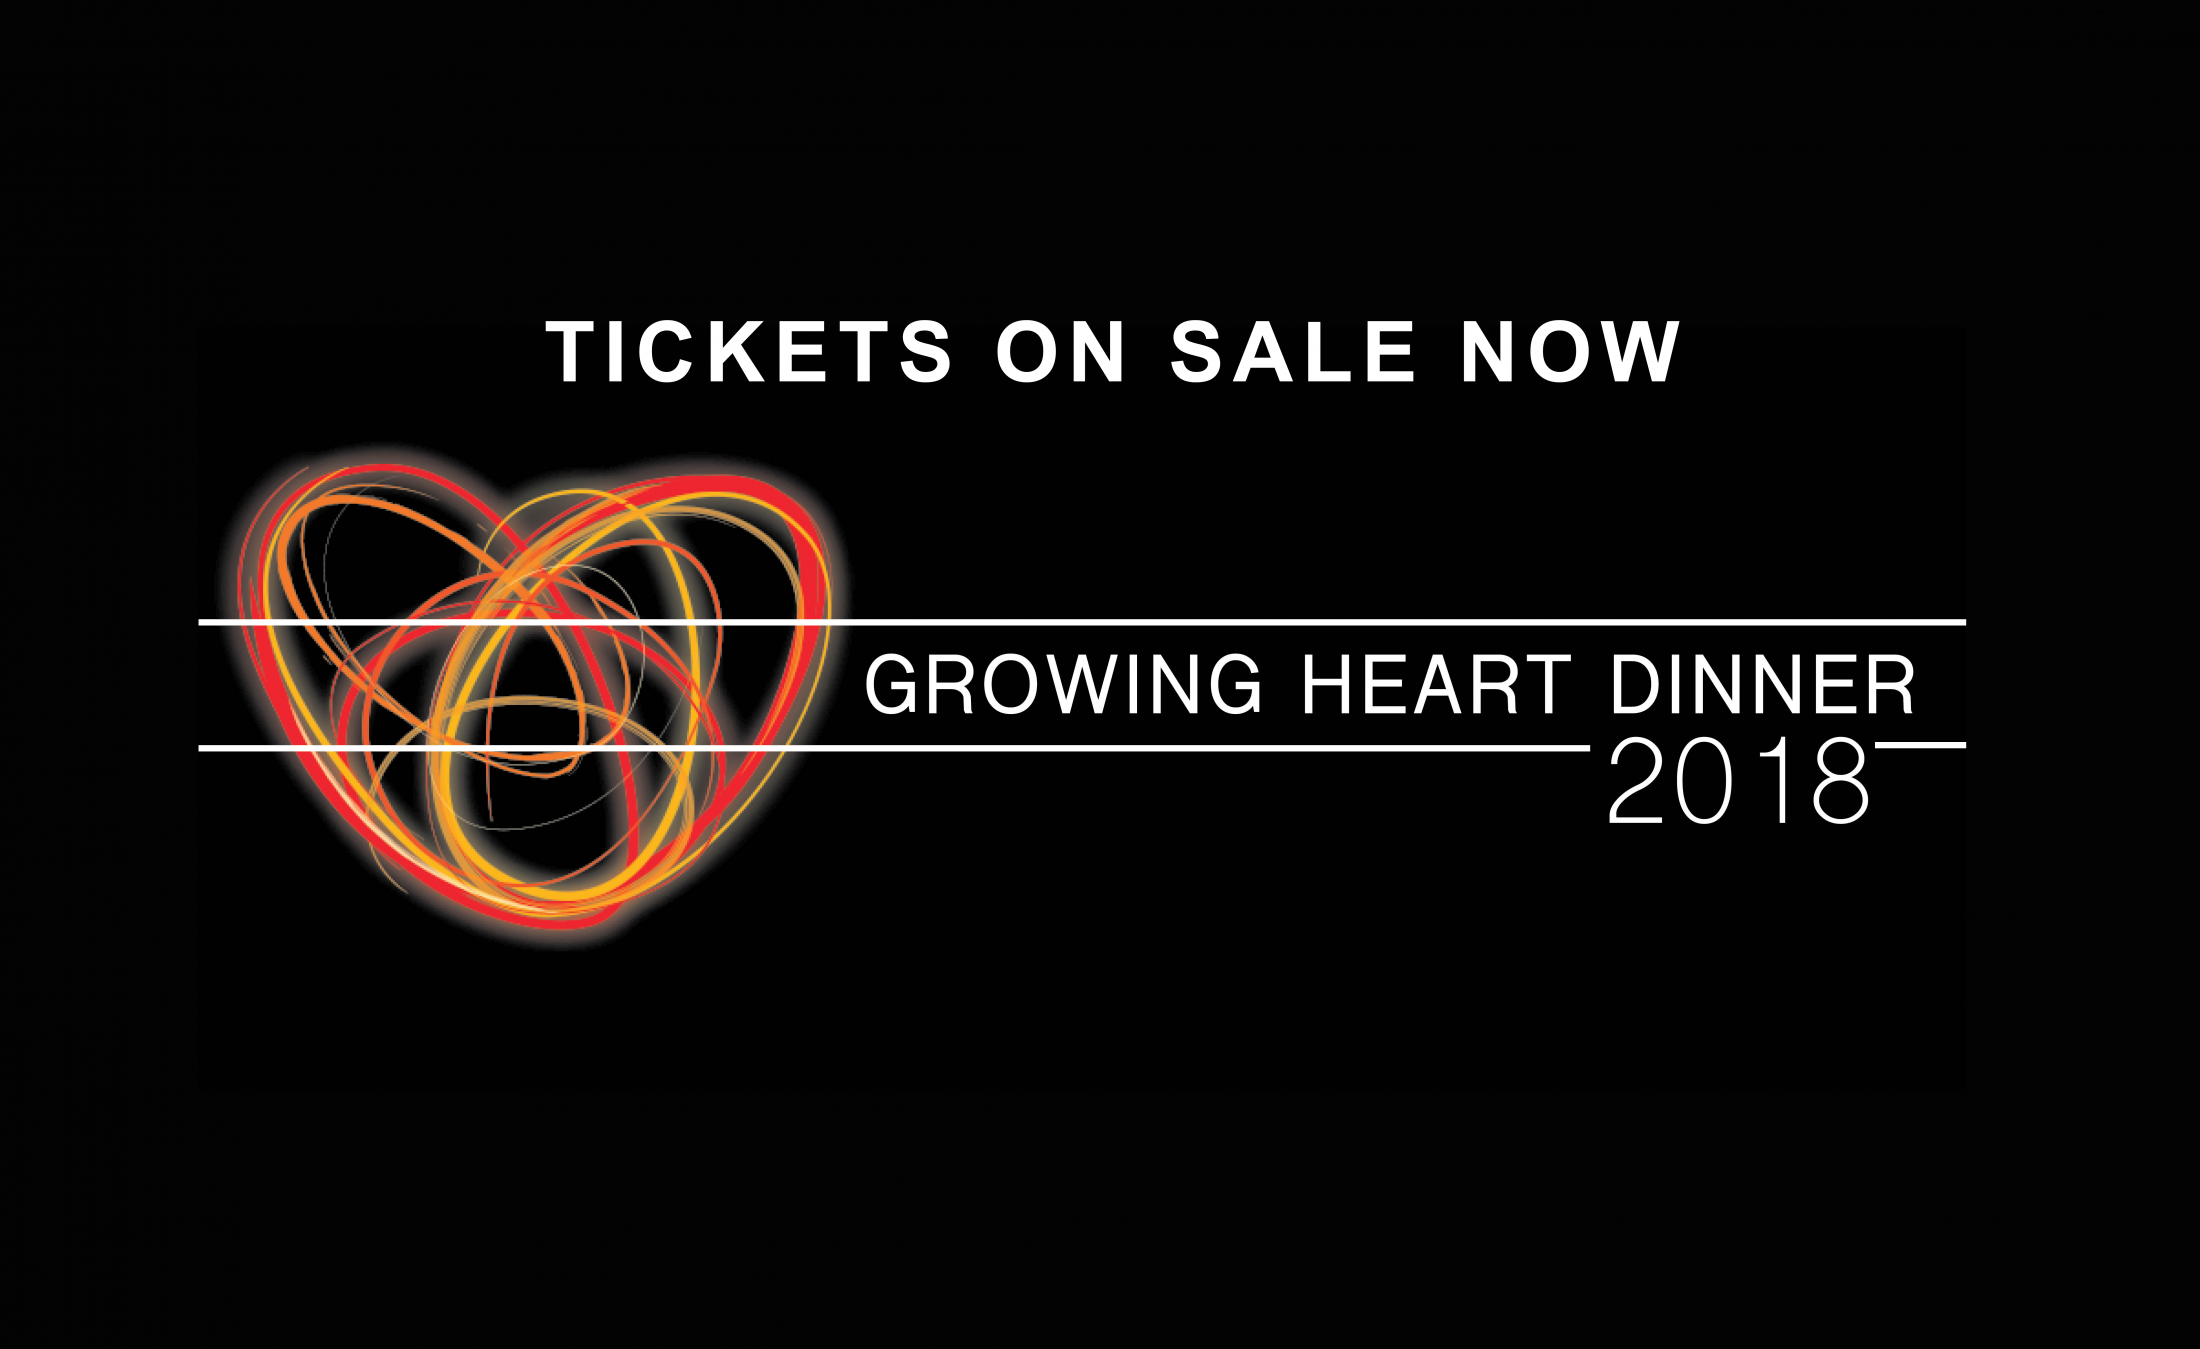 Growing Heart Dinner 2018